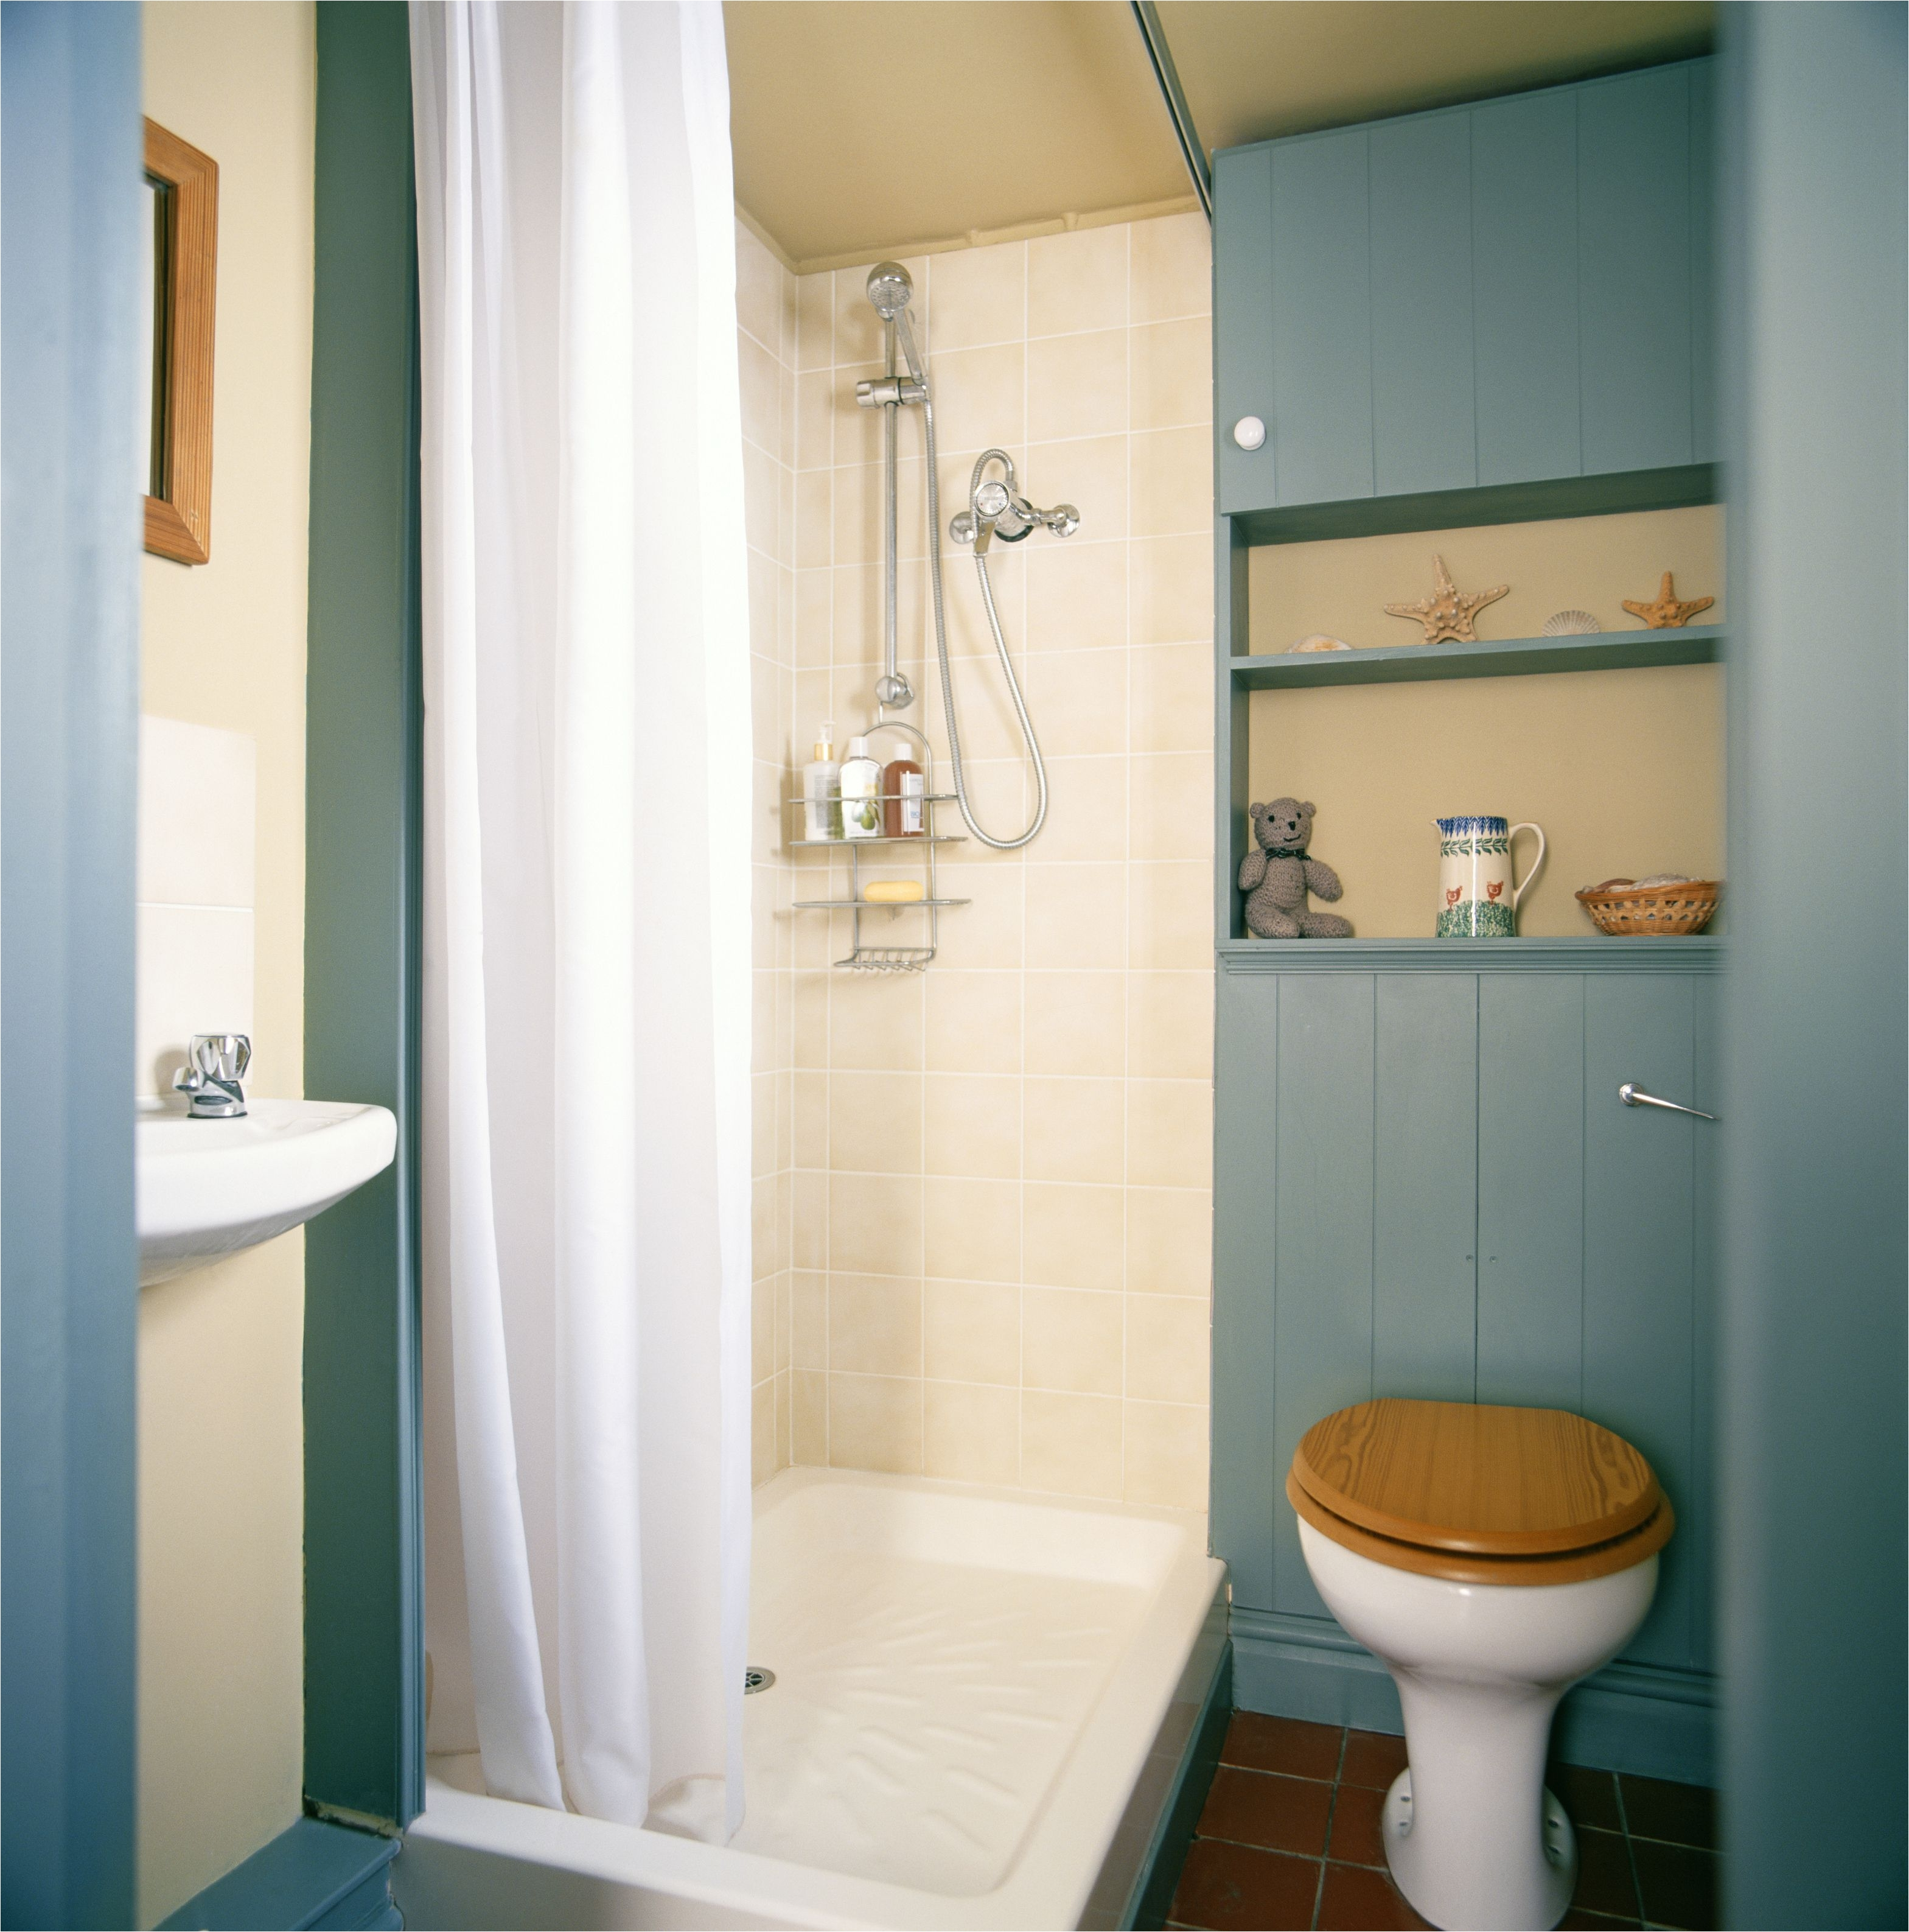 front view of a toilet in a neat bathroom 540033296 57b4d7eb5f9b58b5c2232d7d